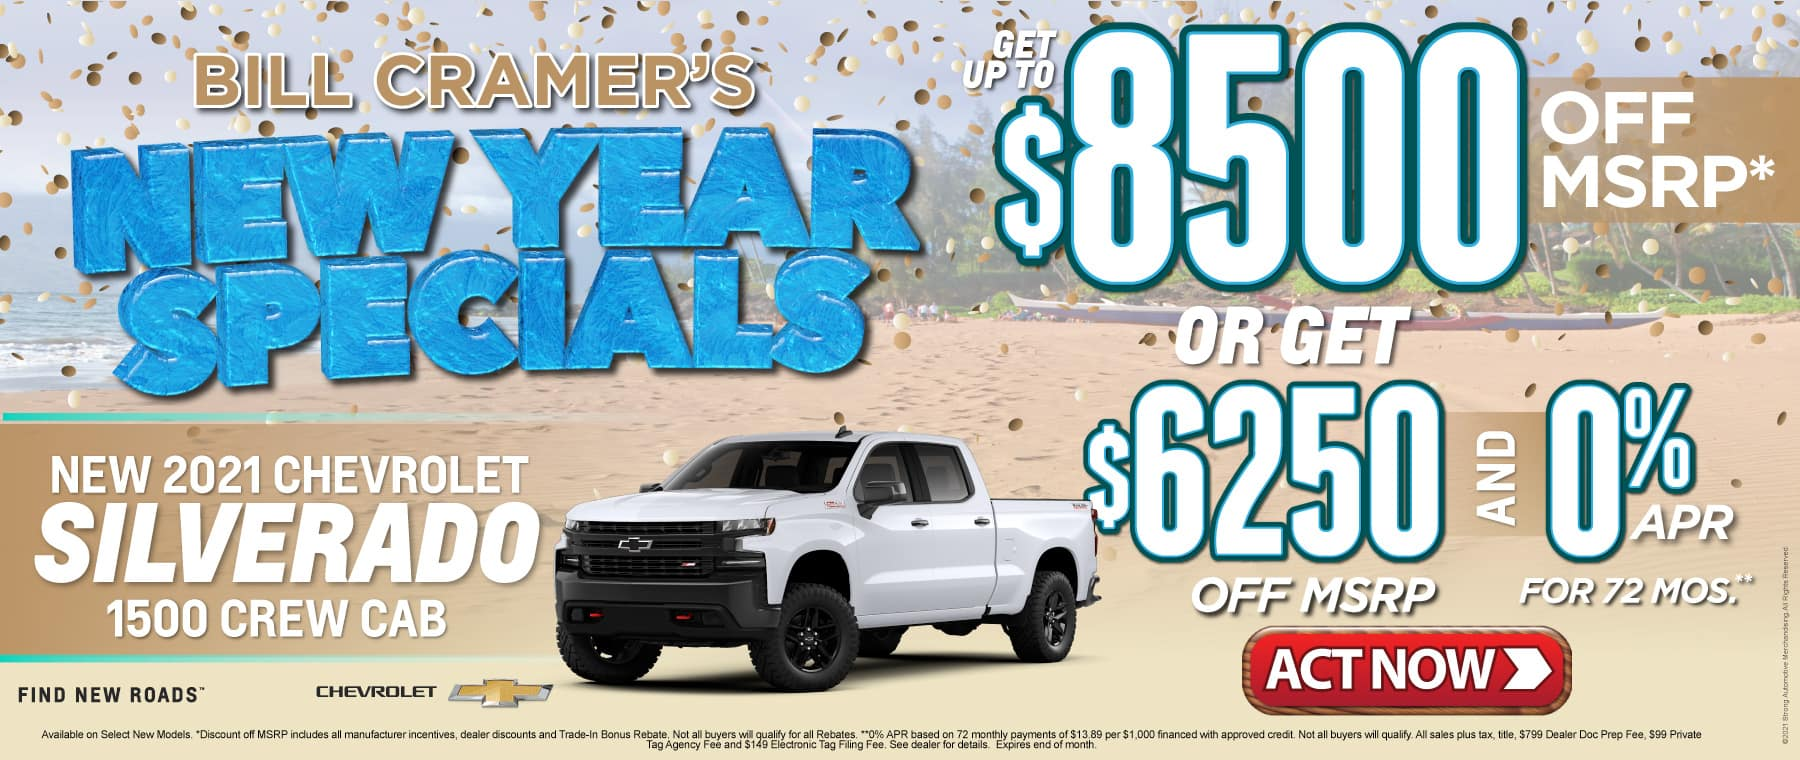 New 2021 Chevrolet Silverado - Get up to $8500 off msrp - Act Now